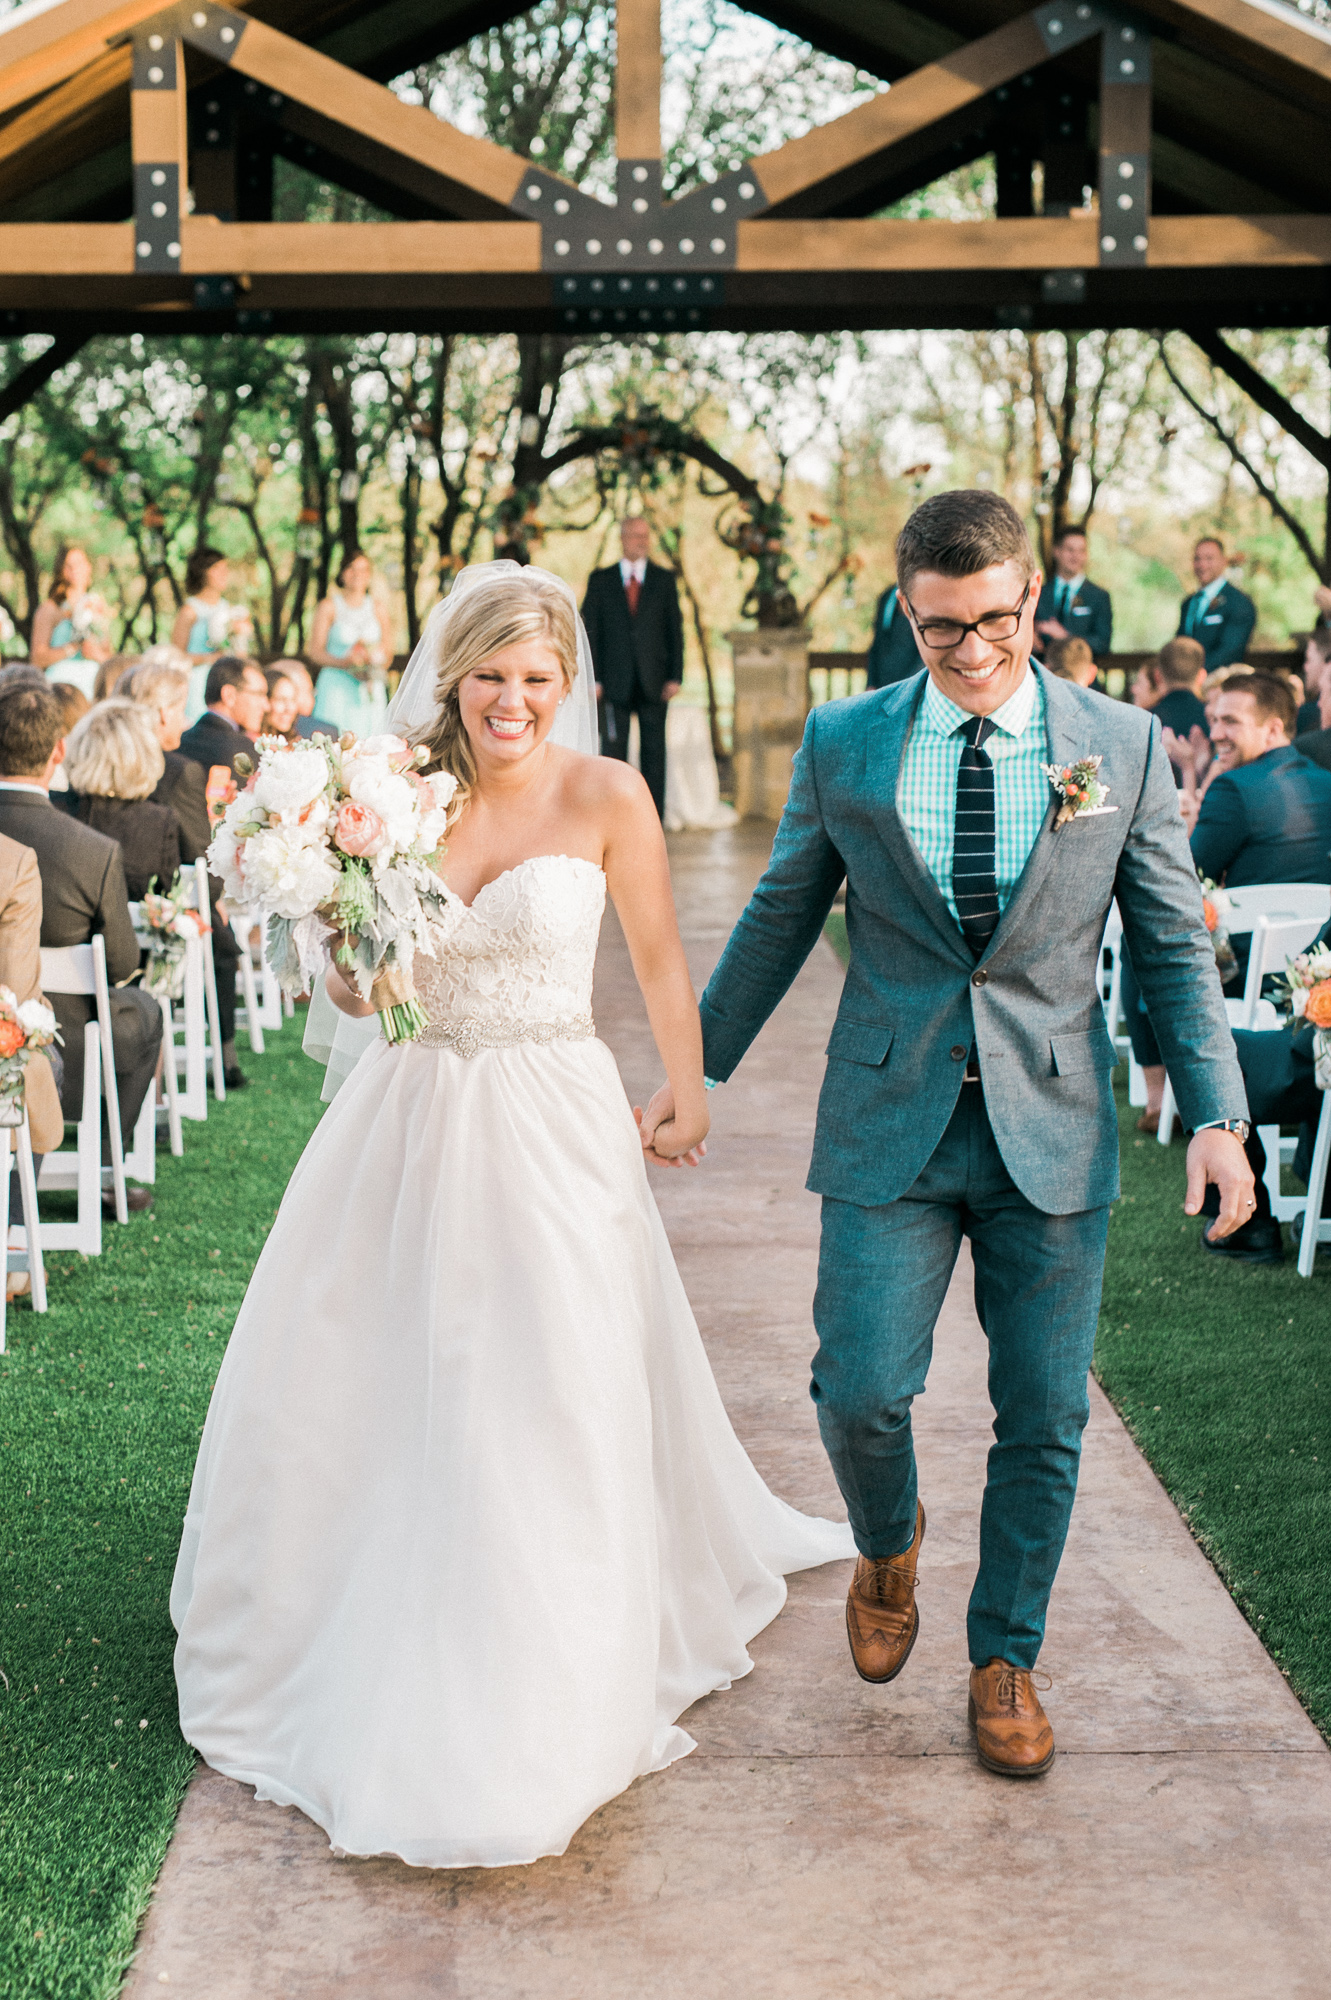 Chisolm_Springs_Wedding_OKC_Film_photographer-15.jpg